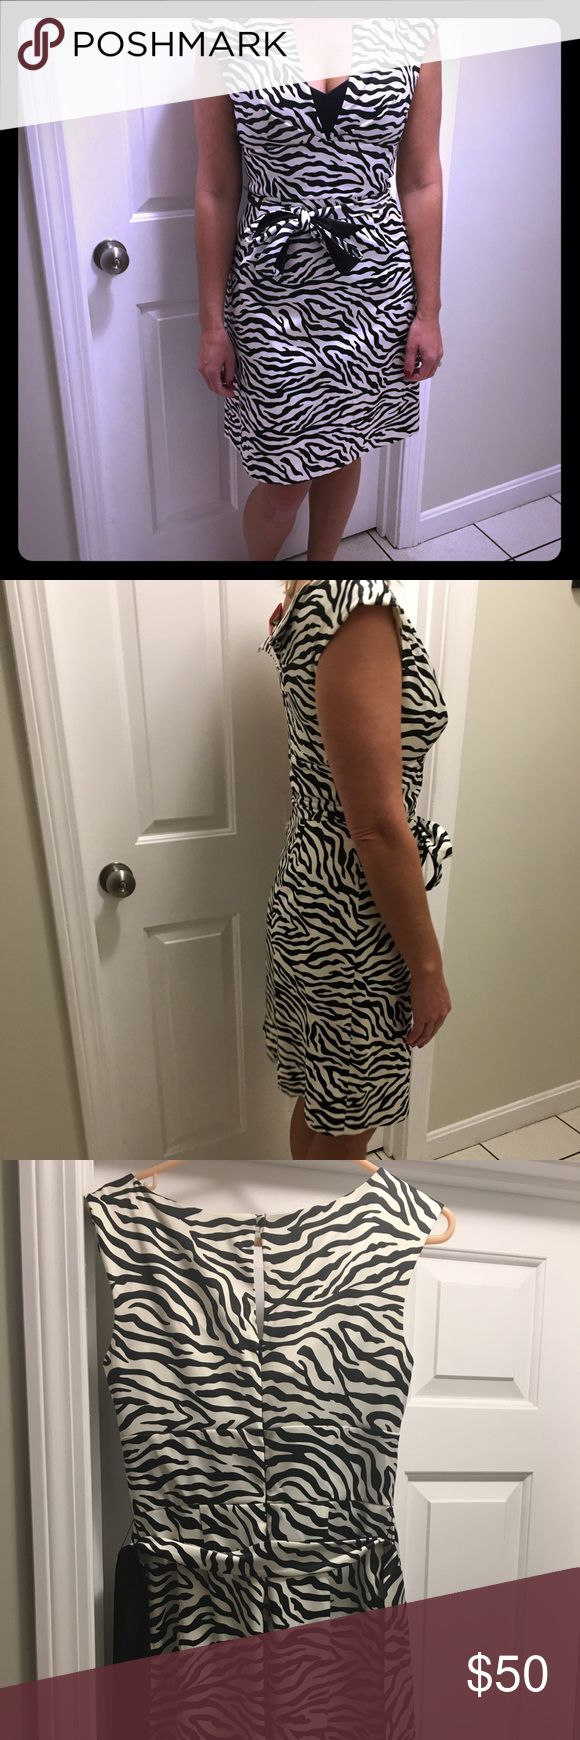 White House Black Market zebra print dress WHBM zebra print dress.  V neck with a little black sweetheart patch, gathered at the waist with 2 sided tie (1 side zebra, 1 side solid black). Worn a few times, EUC, fresh from dry cleaner. Smoke free pet free home. White House Black Market Dresses Midi